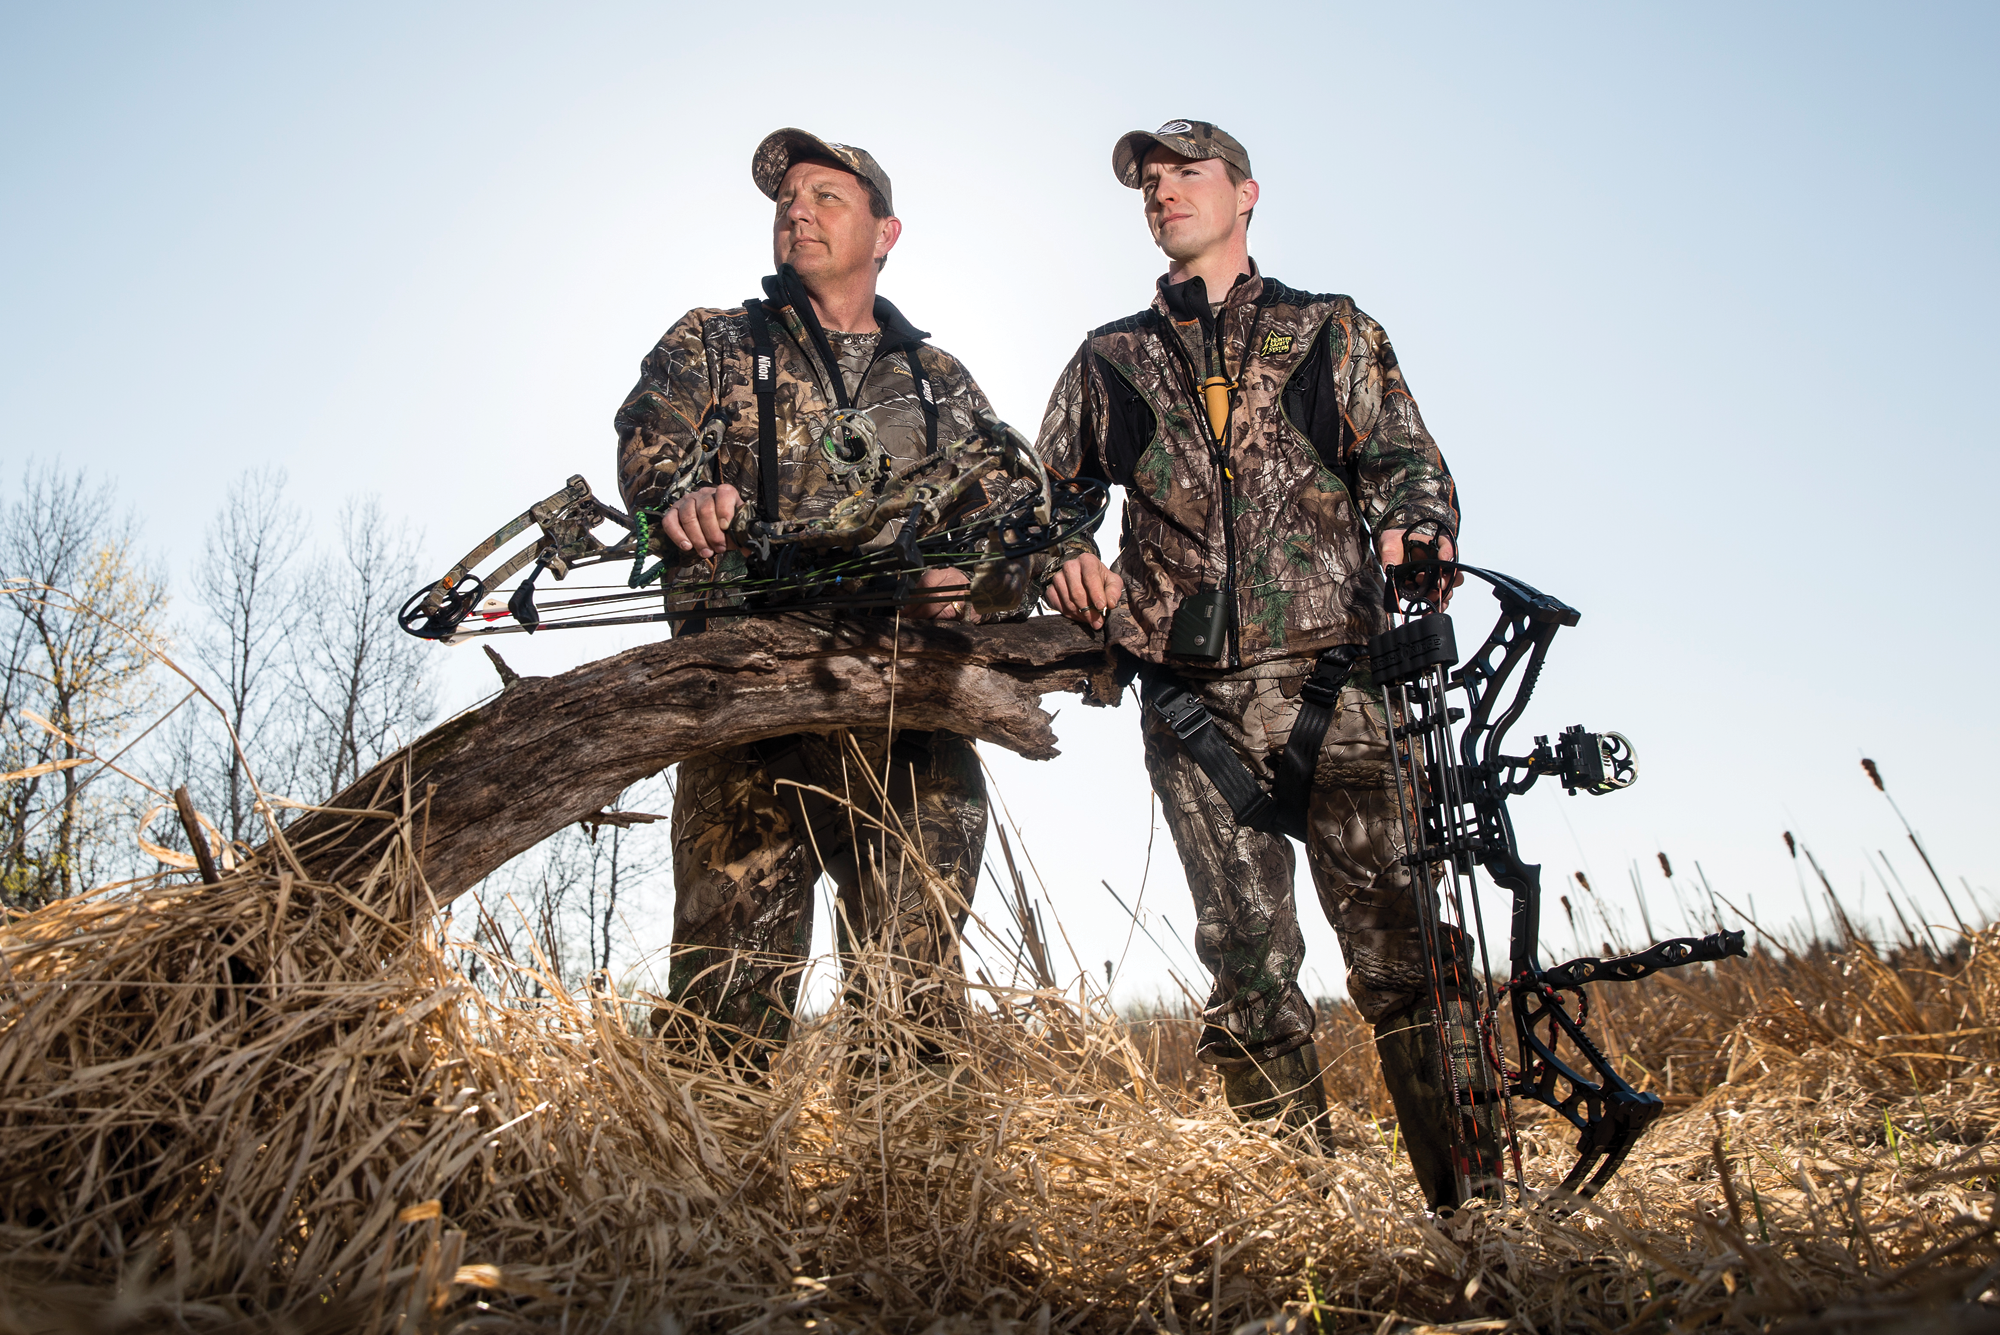 Suburban Legends: 15 Deer Hunting Tips from Two Big Buck Bowhunters